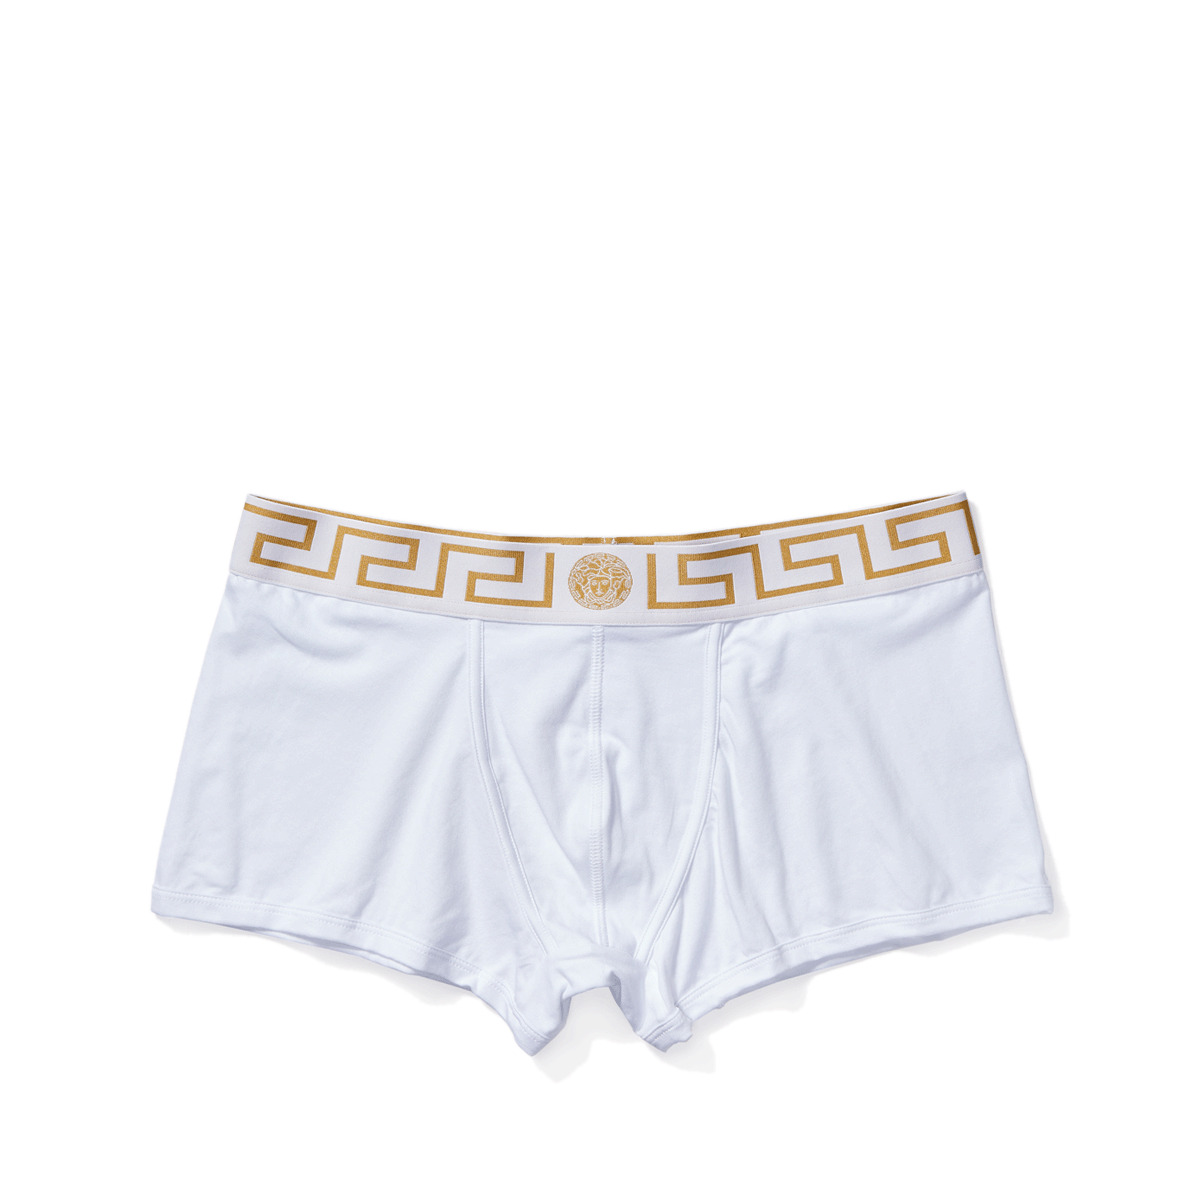 Versace - Iconic Boxer Brief with White and Gold Band